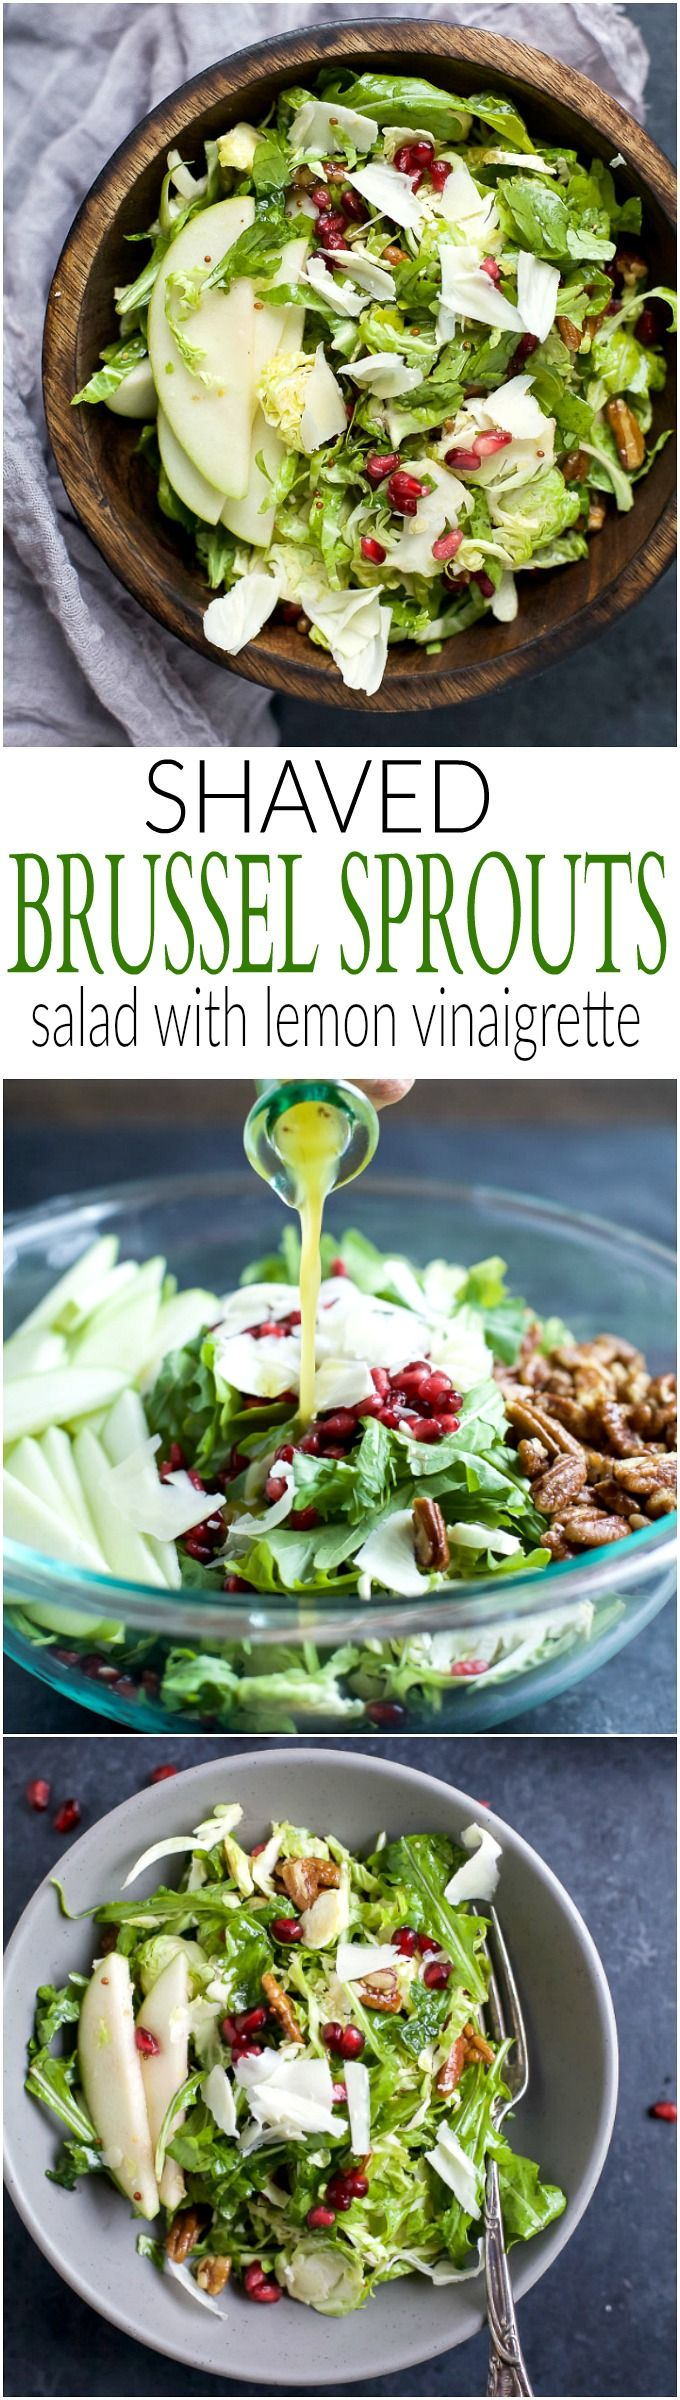 Shaved Brussel Sprout Salad filled with apples, pomegranate, candied pecans, and white cheddar cheese then tossed with a light Lemon Vinaigrette. This Brussel Sprout Salad is the perfect side dish for the holidays!   joyfulhealthyeats.com #glutenfree